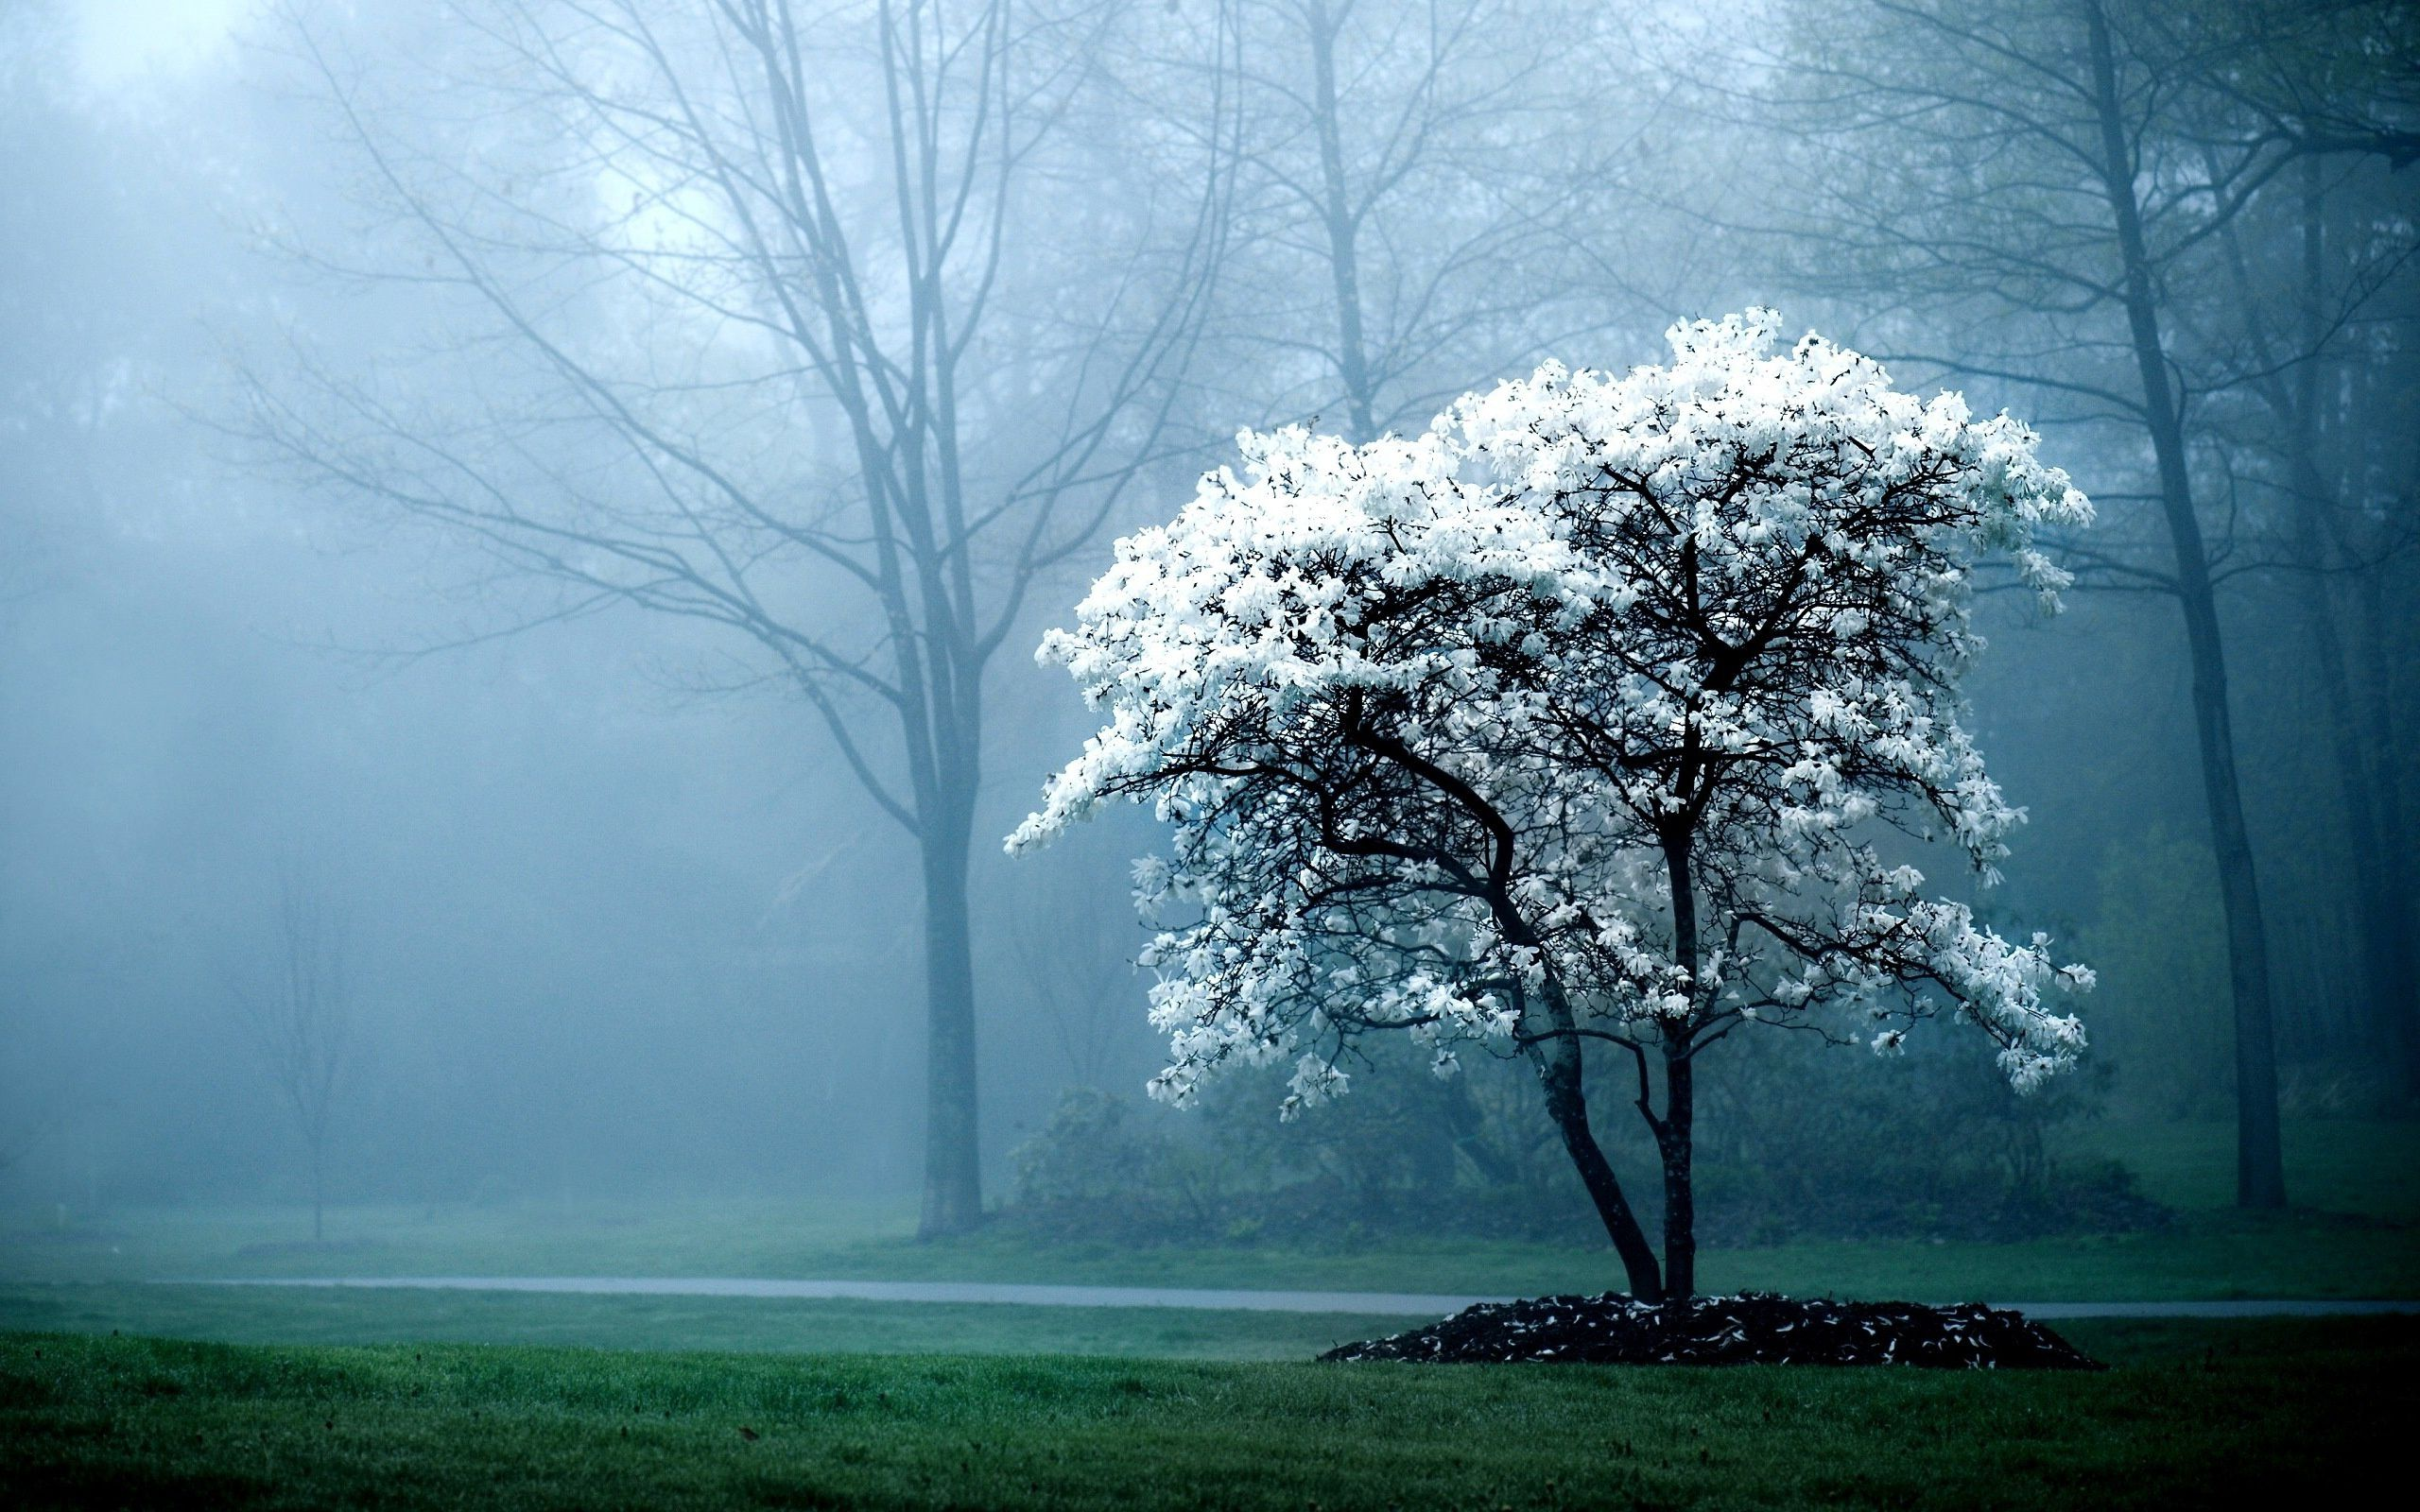 White Tree Fog Mist Forest Hd Wallpapers Lovely Desktop Background White Magnolia Tree Tree Hd Wallpaper Nature Photos